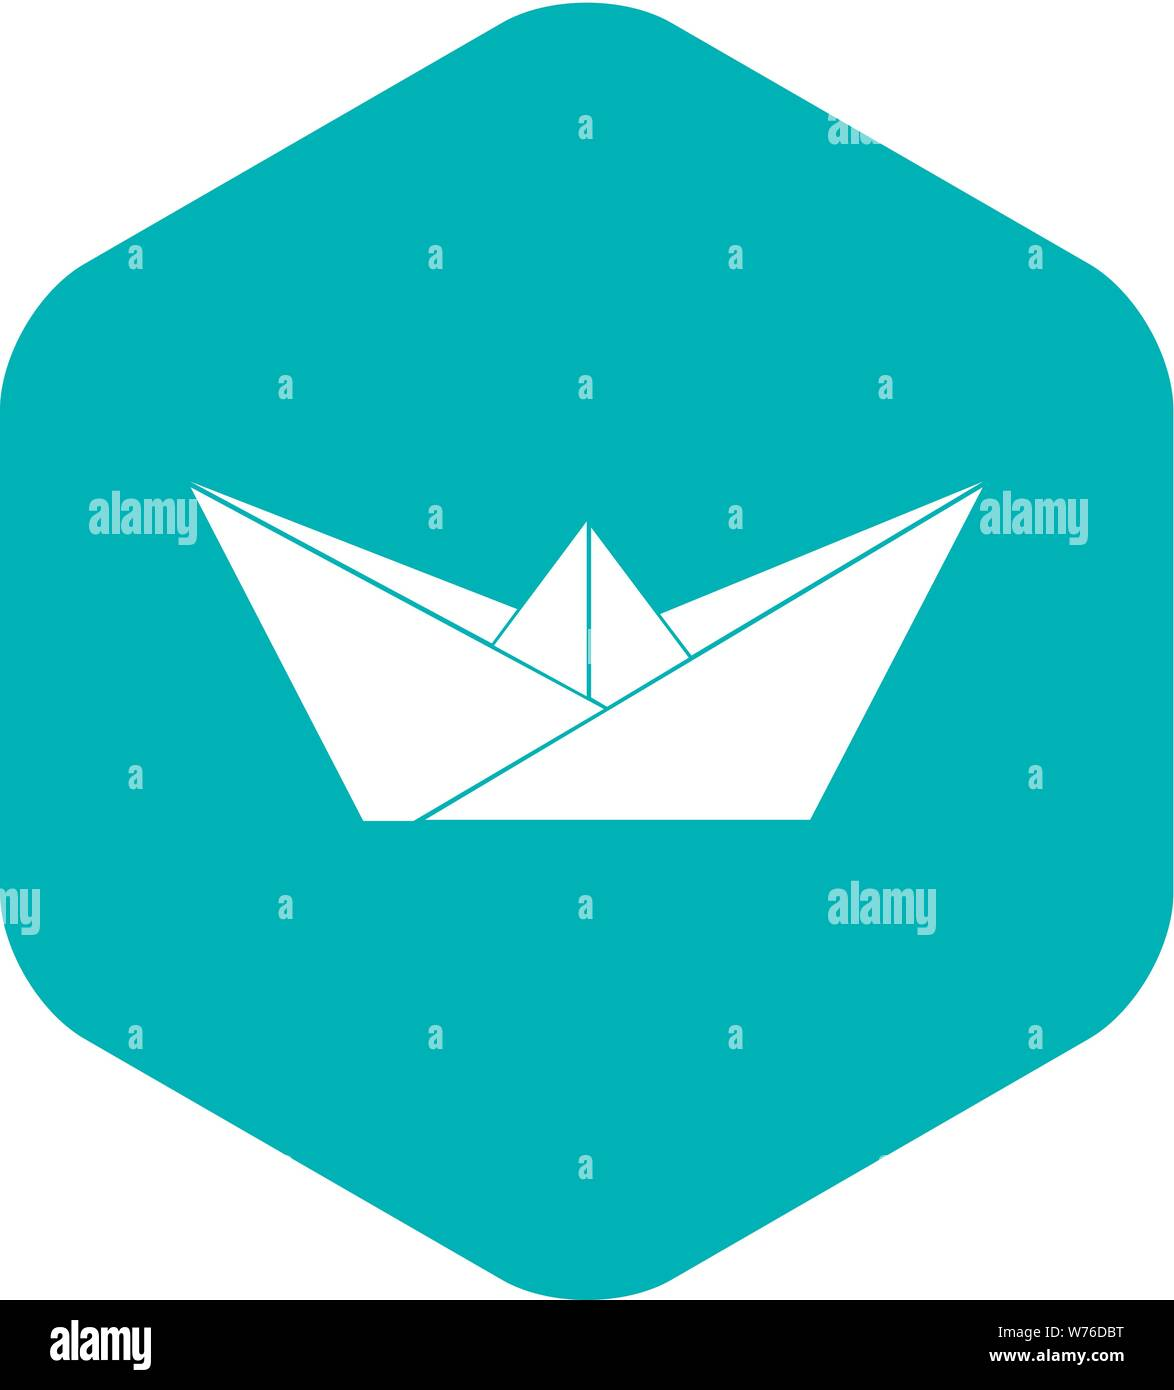 Origami Boat Simple 28 Images Bos Practical Sailboat - Easy ... | 1390x1174